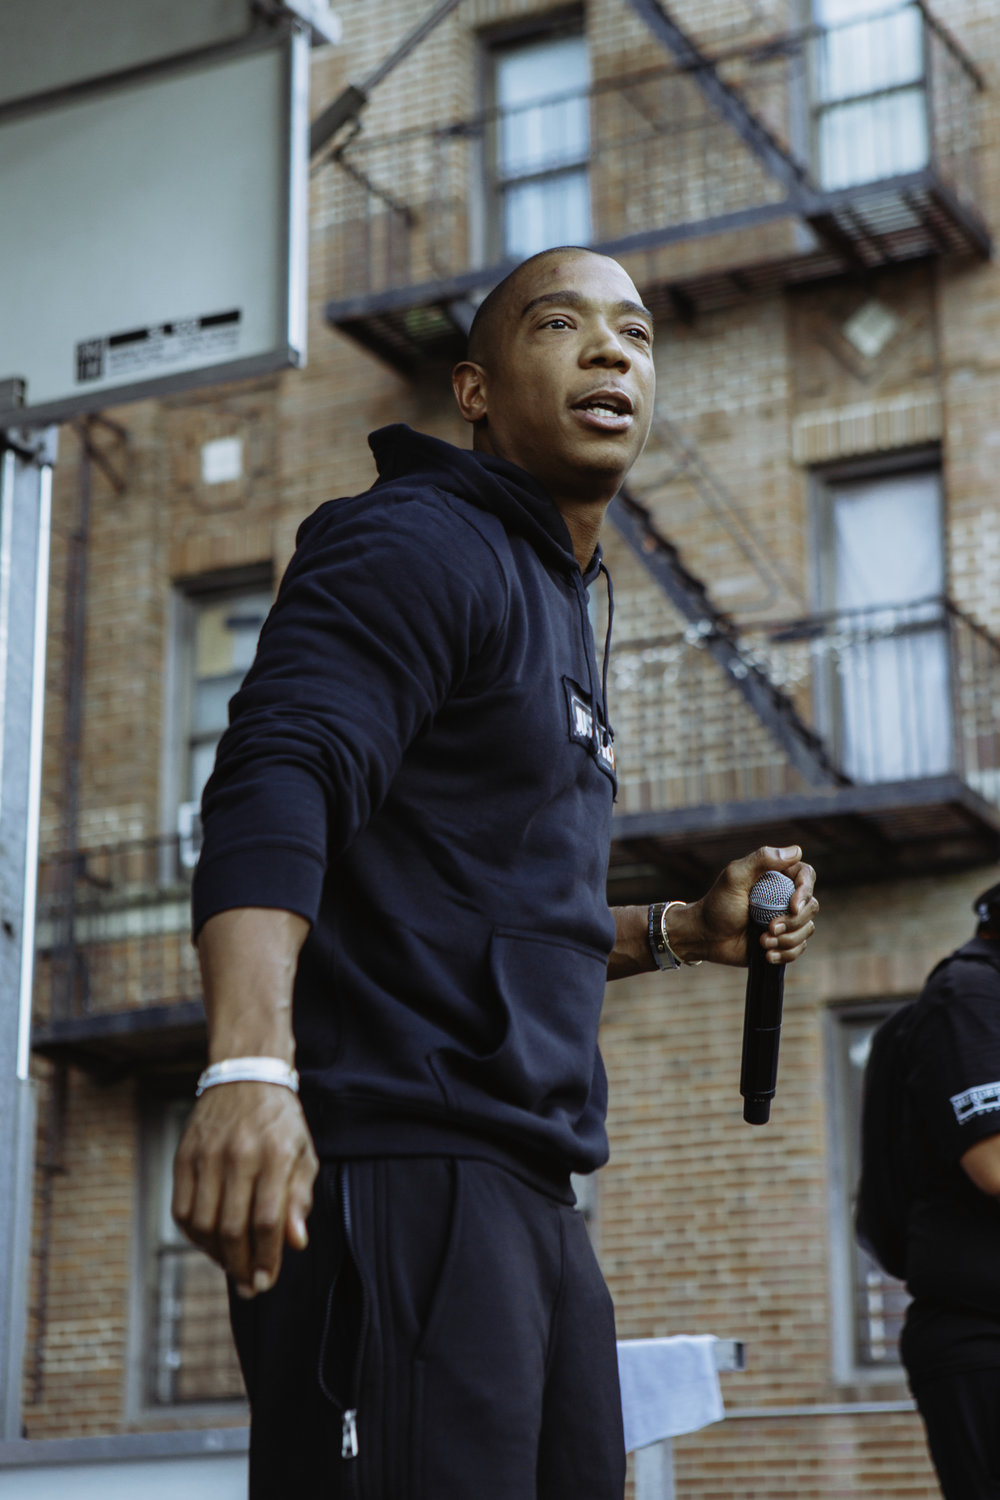 Ja Rule @ Morrison Ave Festival, The Bronx